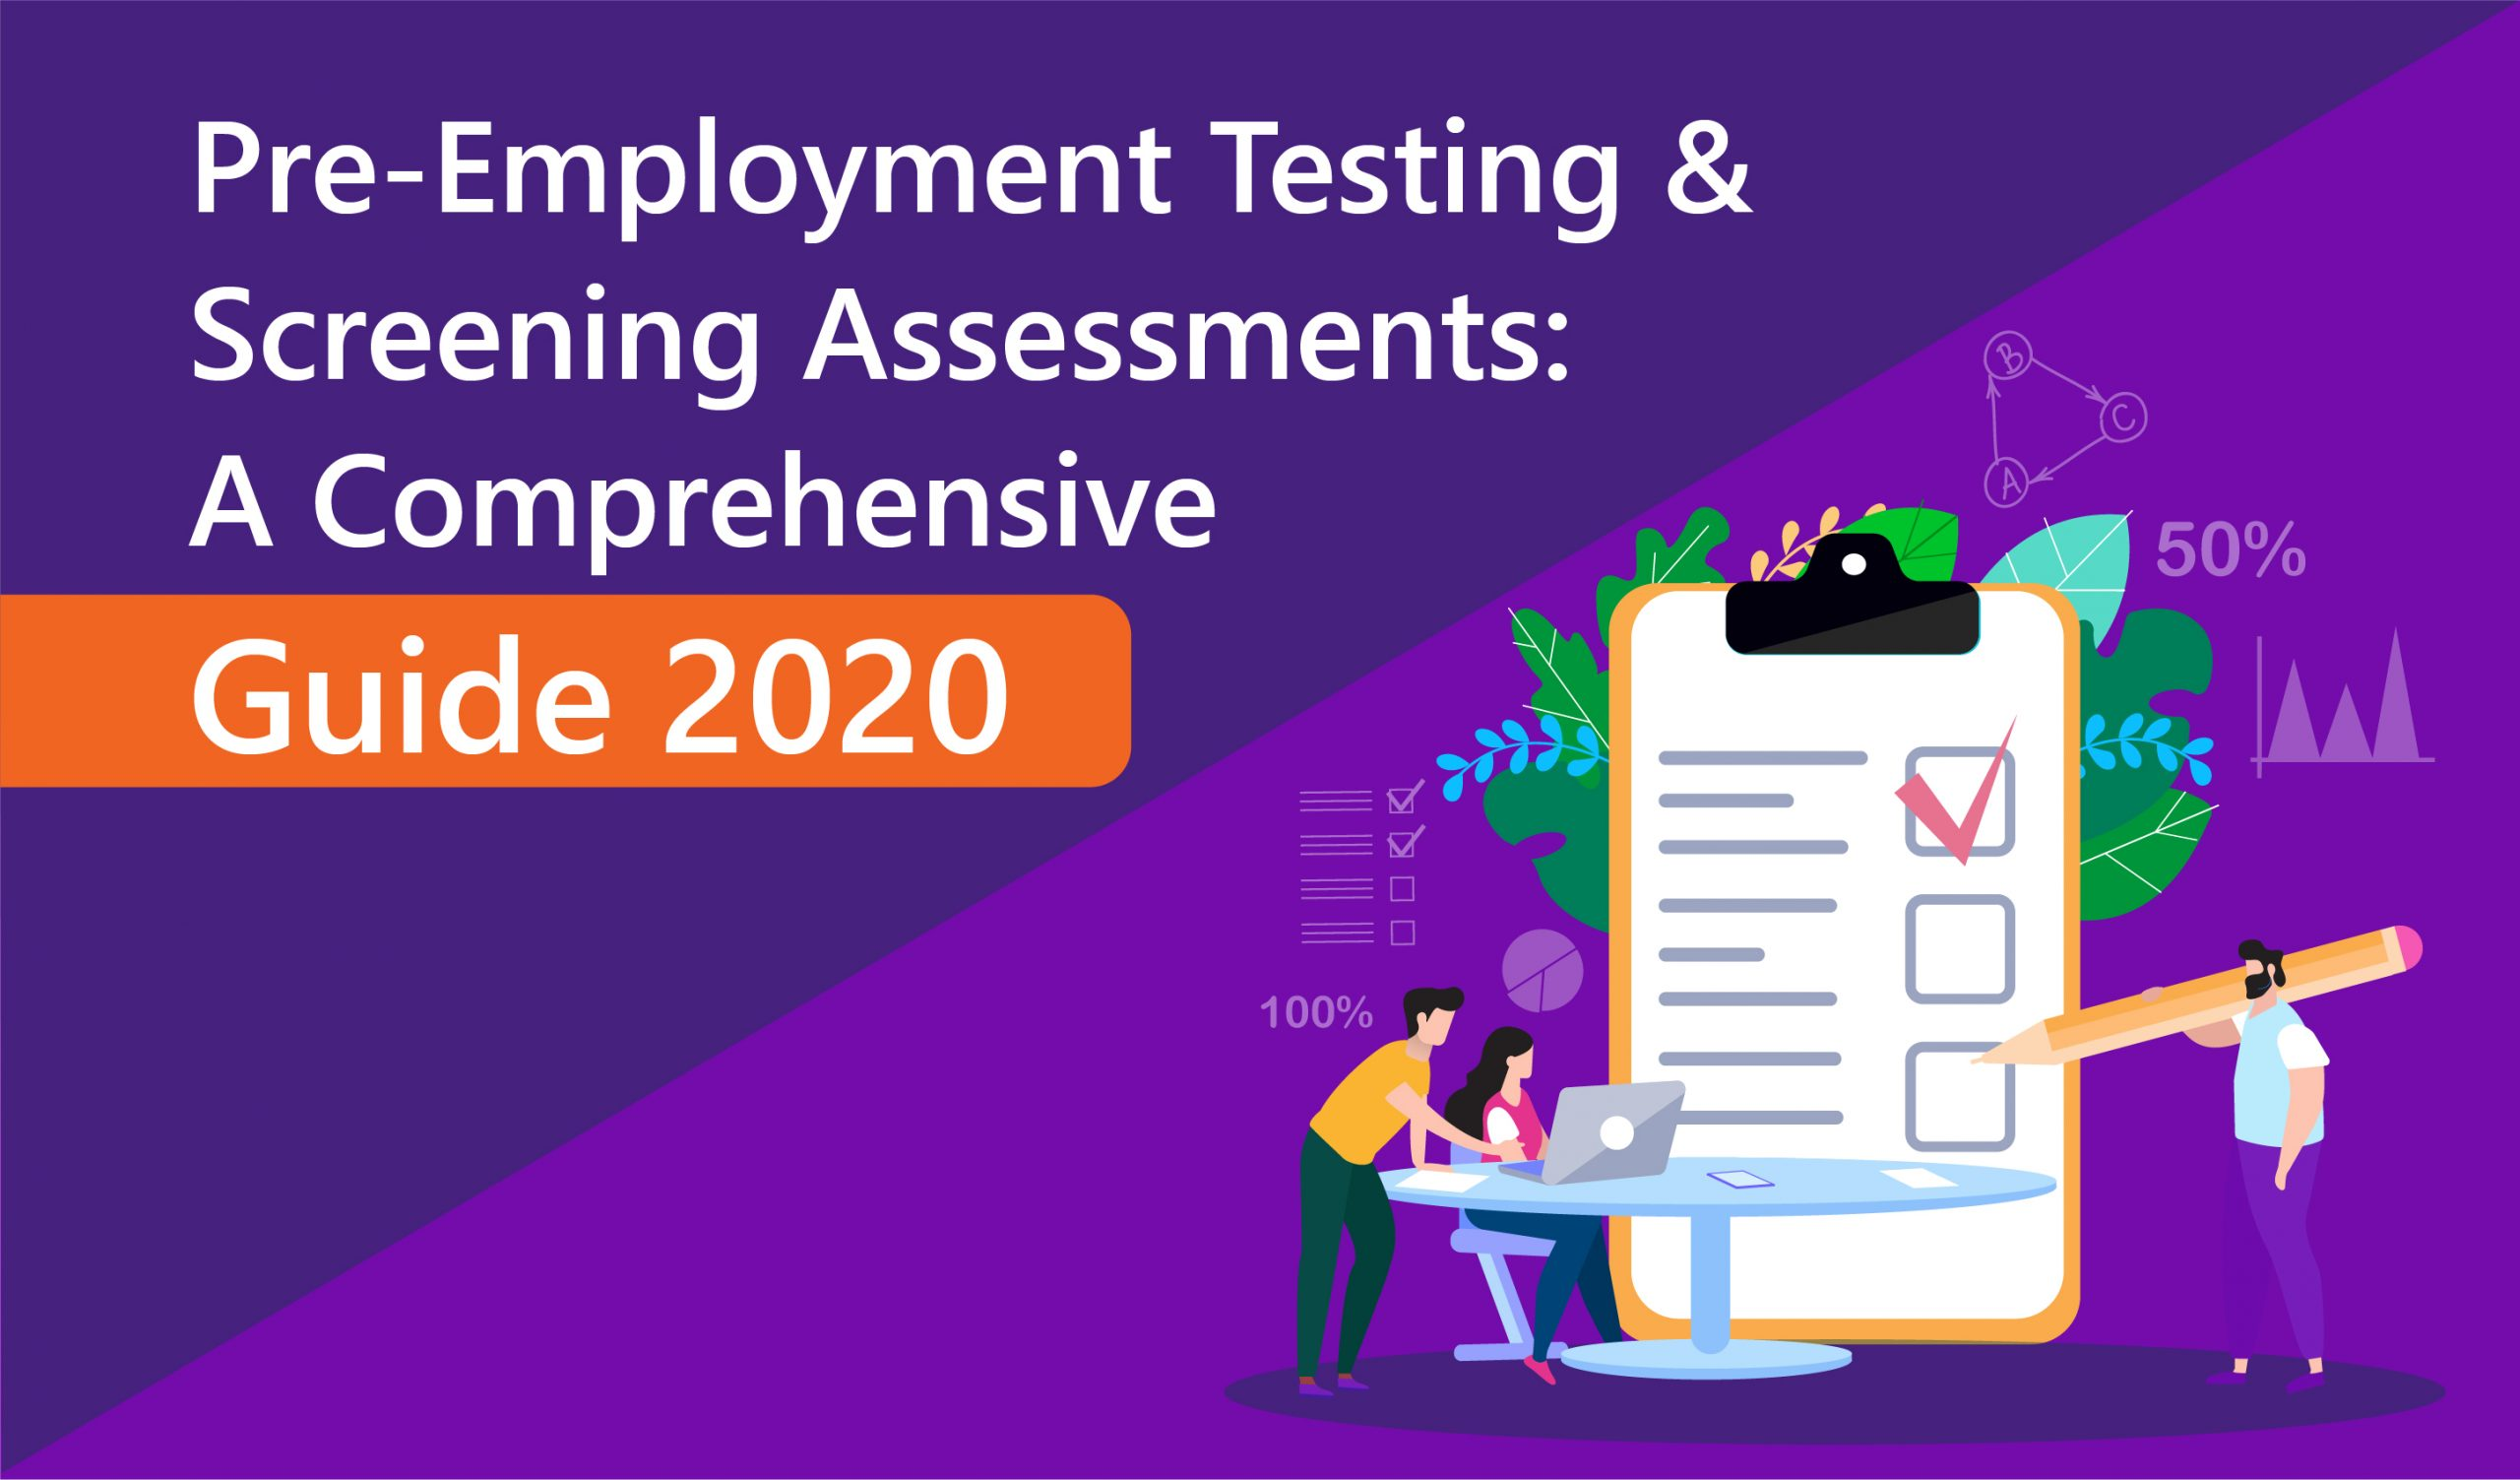 Pre-Employment Tests and Assessments